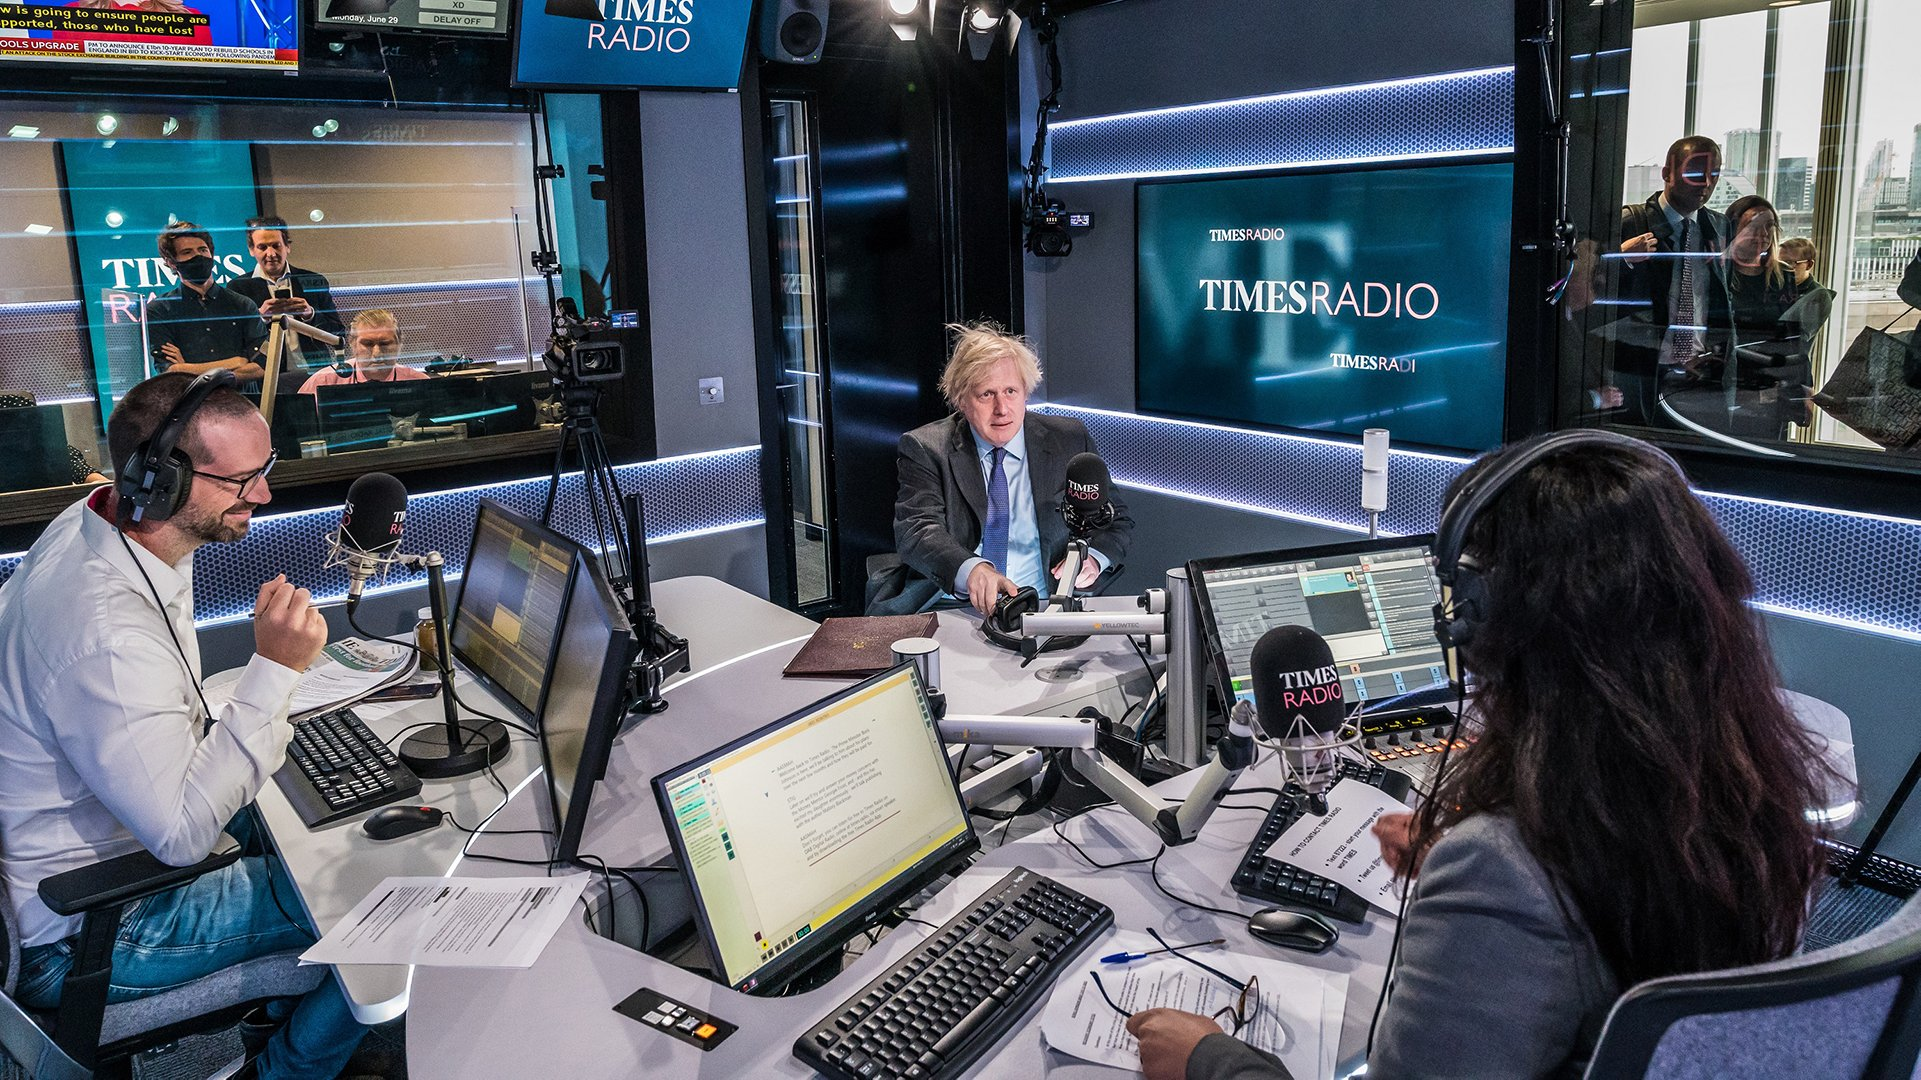 Times radio launch day Boris Johnson interview